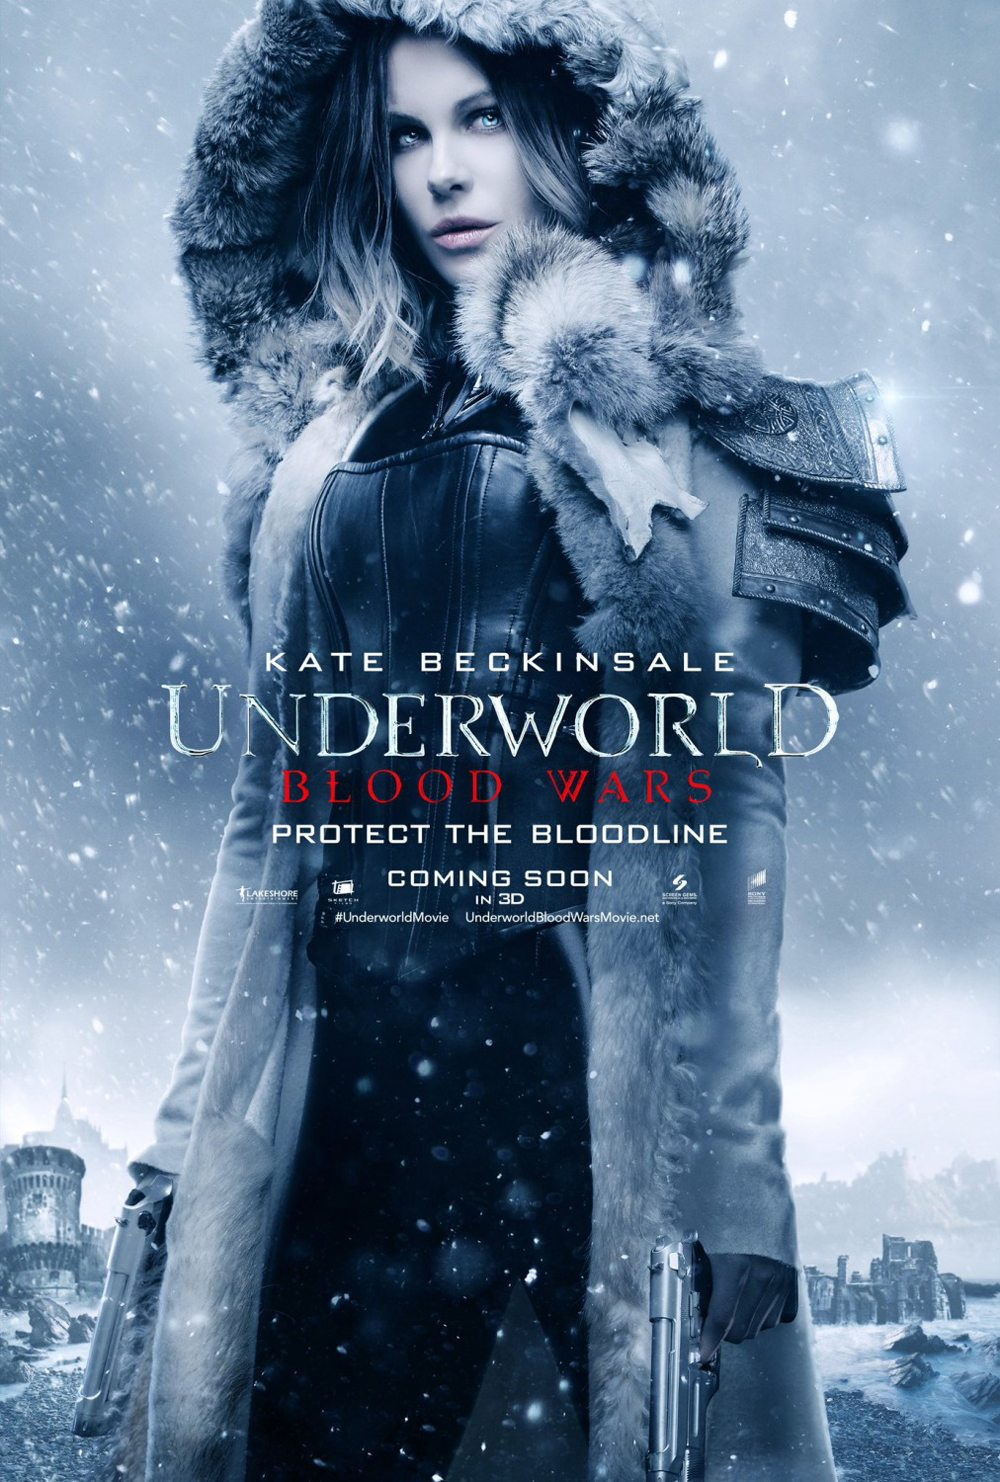 Underworld Blood Wars 101 - Another Underworld: Blood Wars Poster Slides In